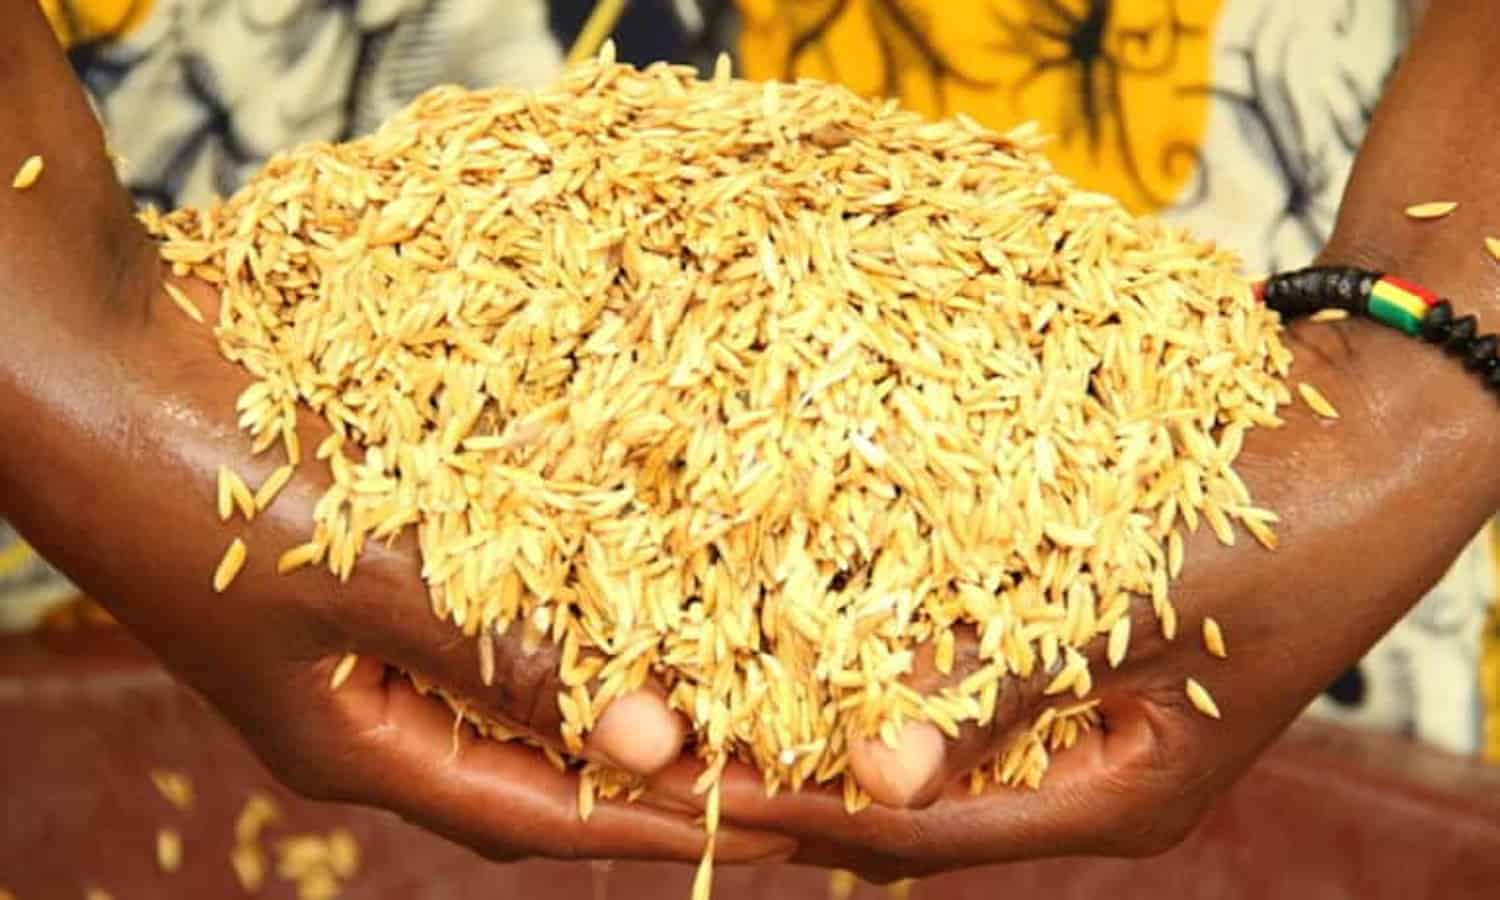 A new report reveals encouraging results for the System of Rice Intensification (SRI) in West Africa.